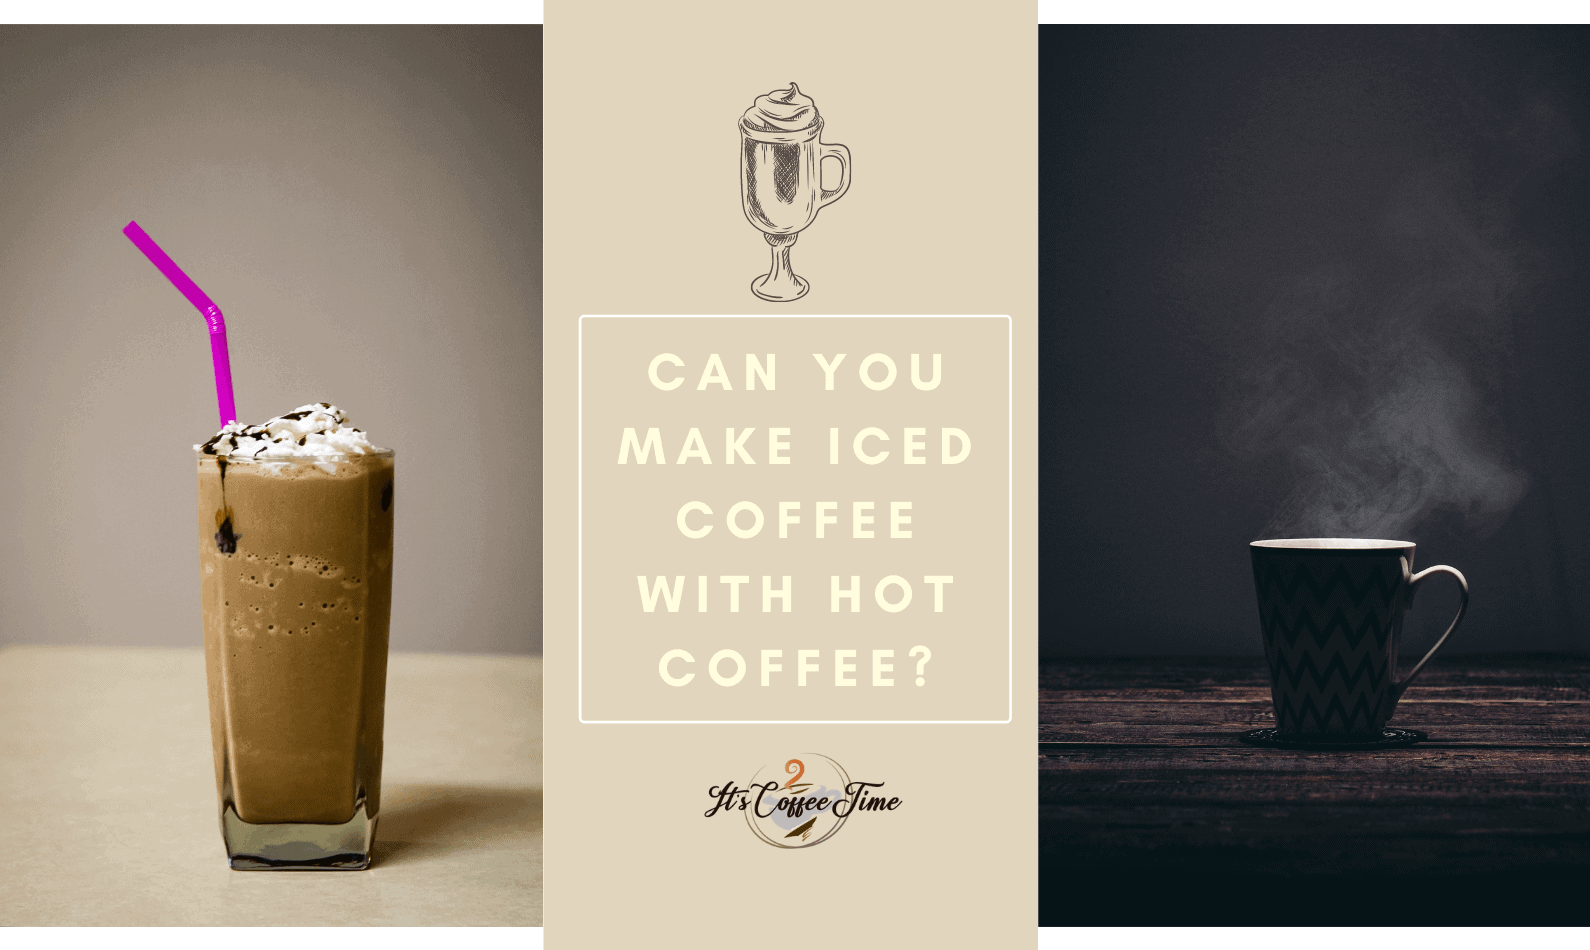 Can you Make Iced Coffee with Hot Coffee